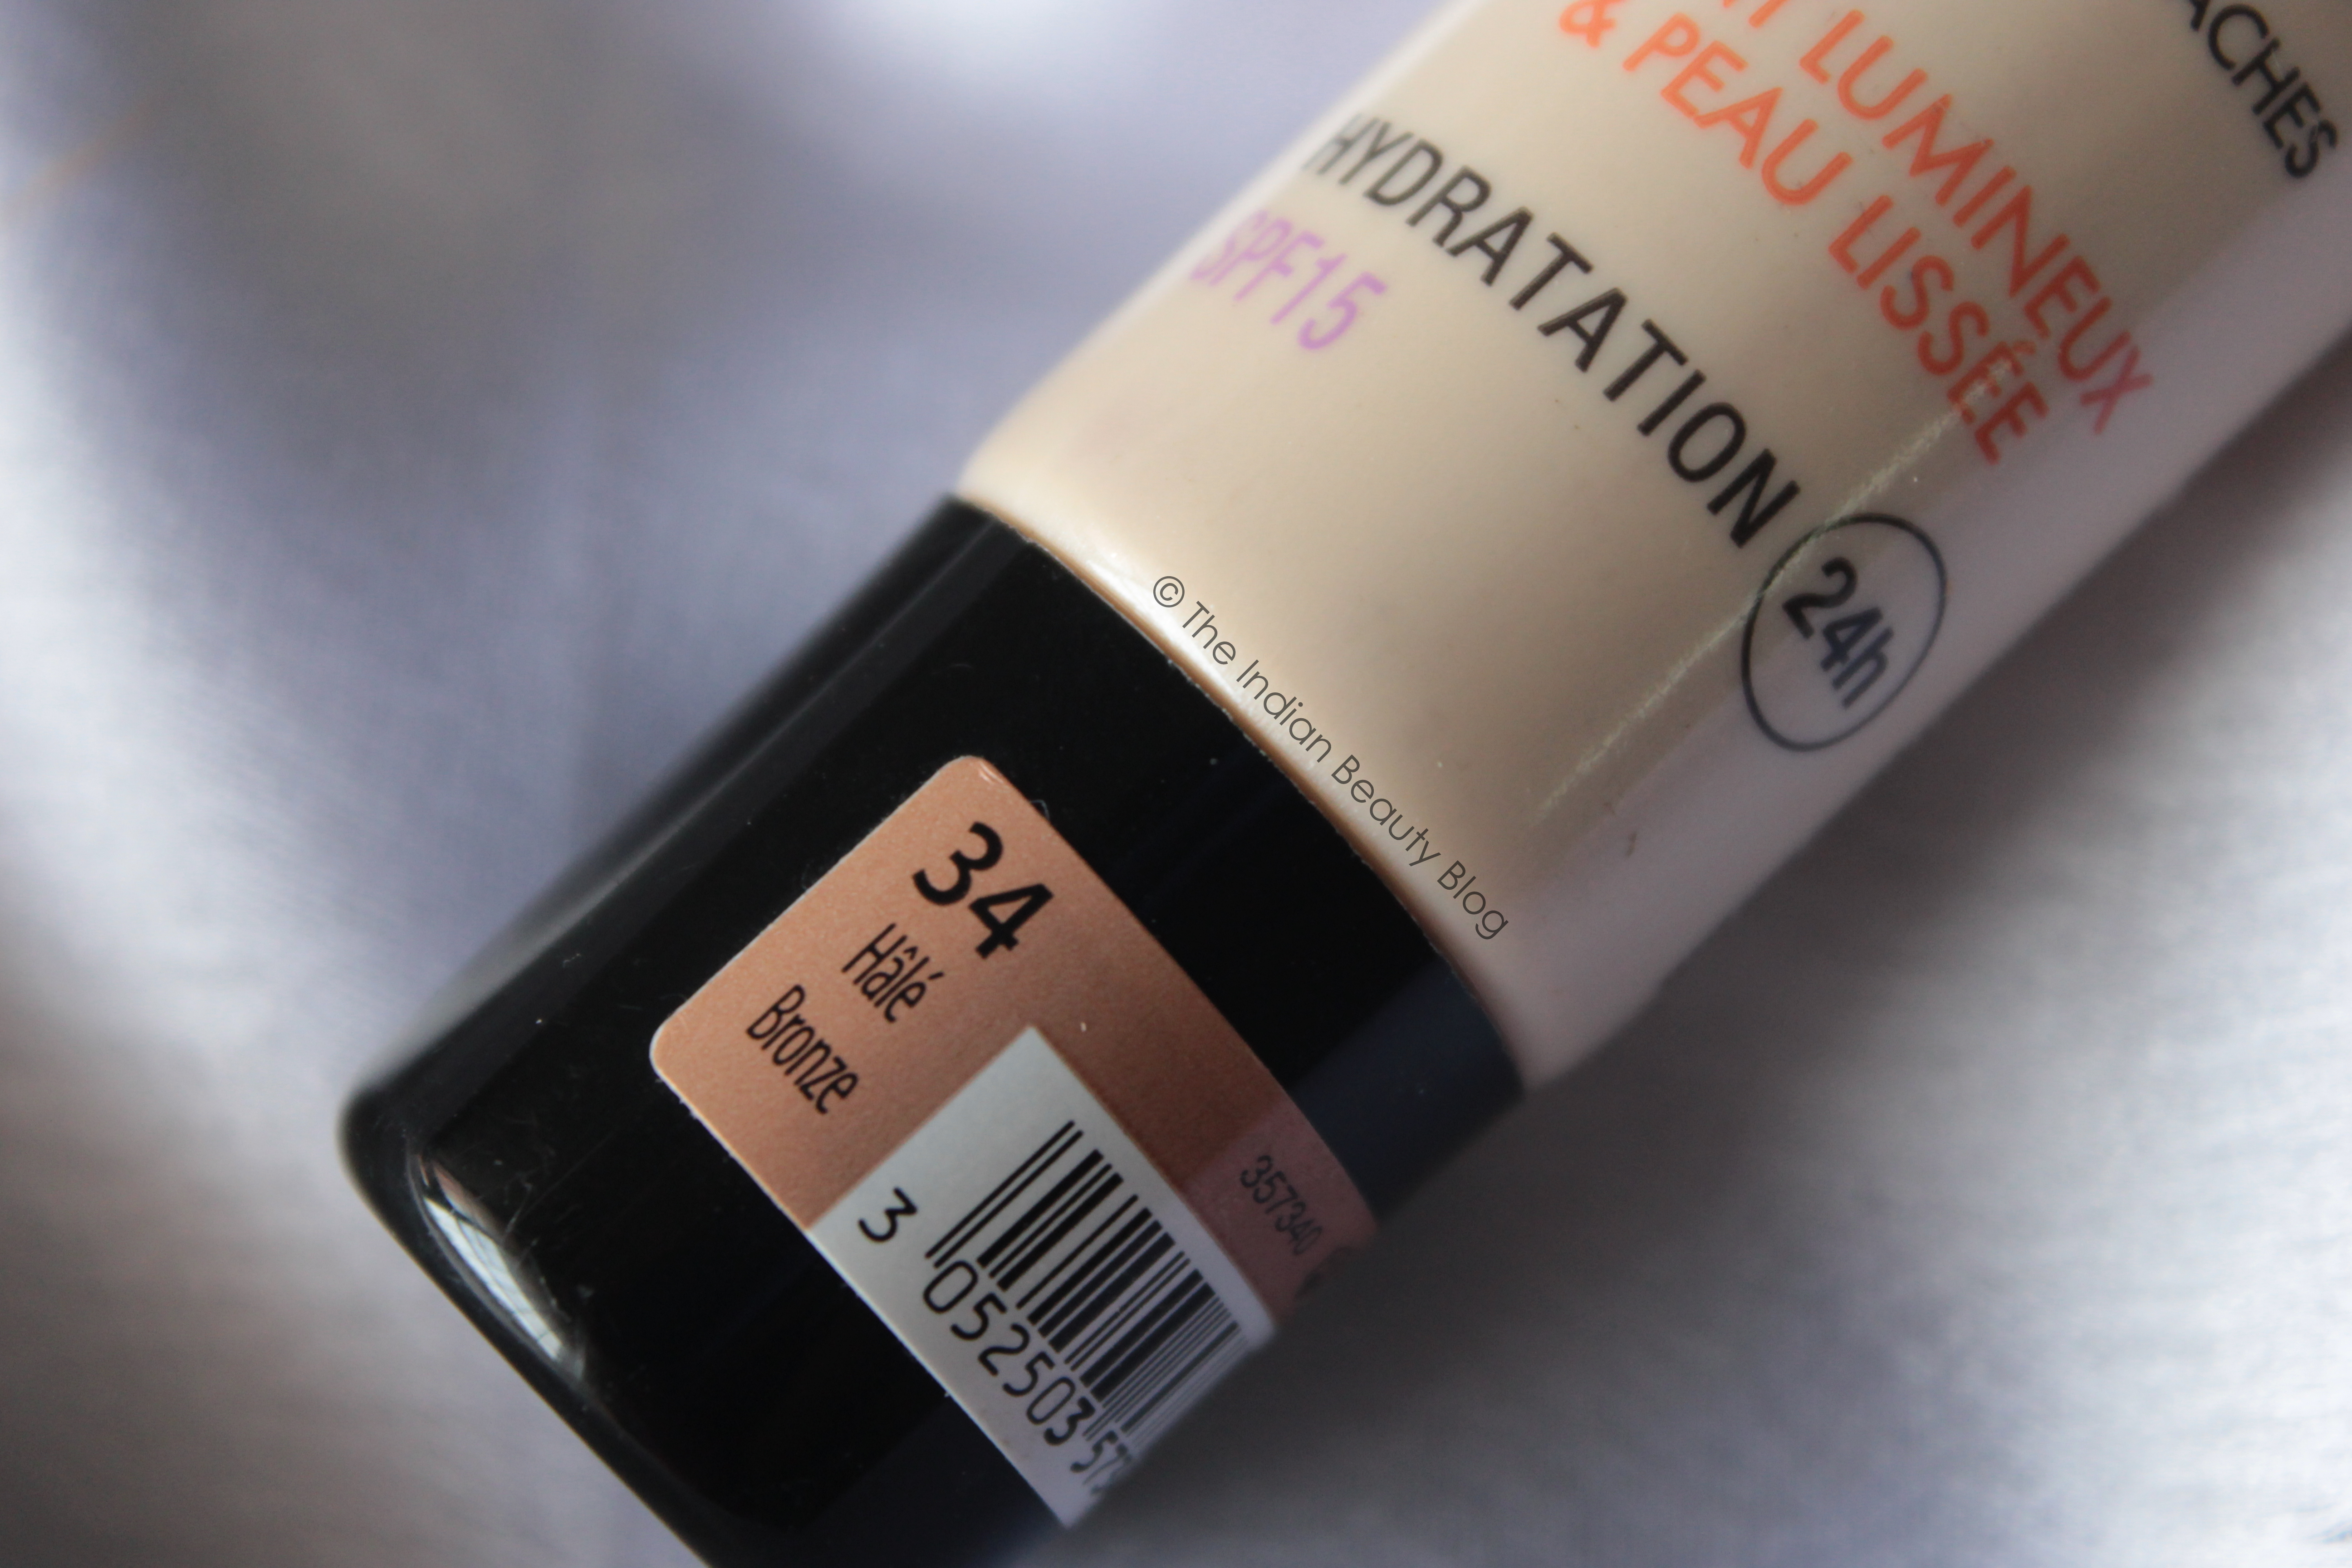 bourjois 123 perfect cc cream 34 review the indian beauty blog. Black Bedroom Furniture Sets. Home Design Ideas